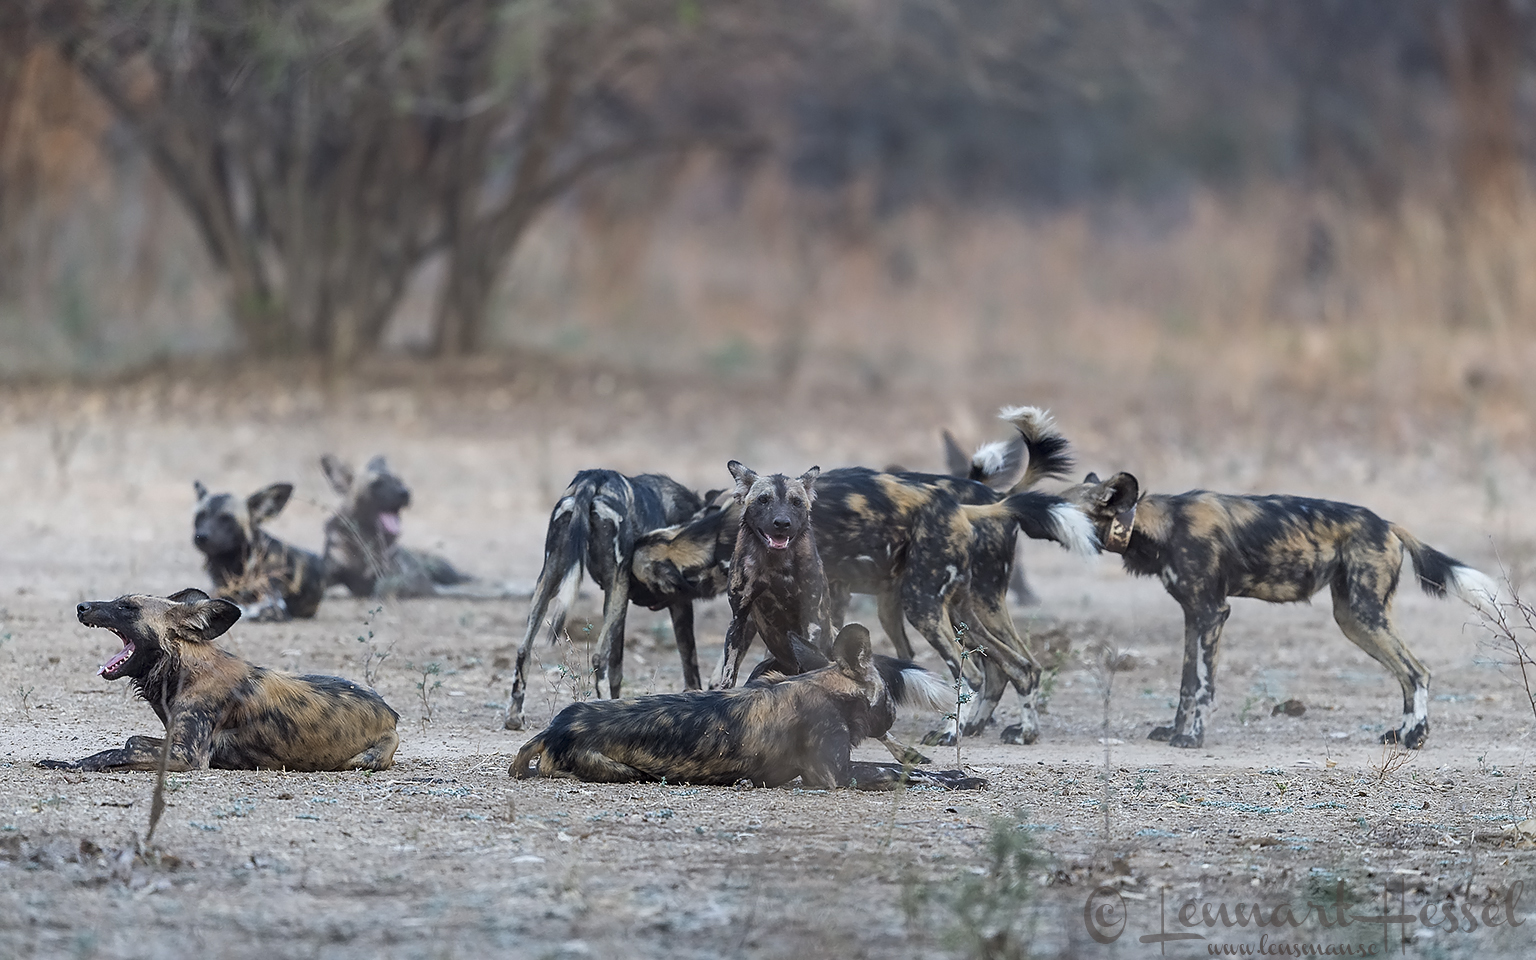 Painted Dogs Mana Pools National Park